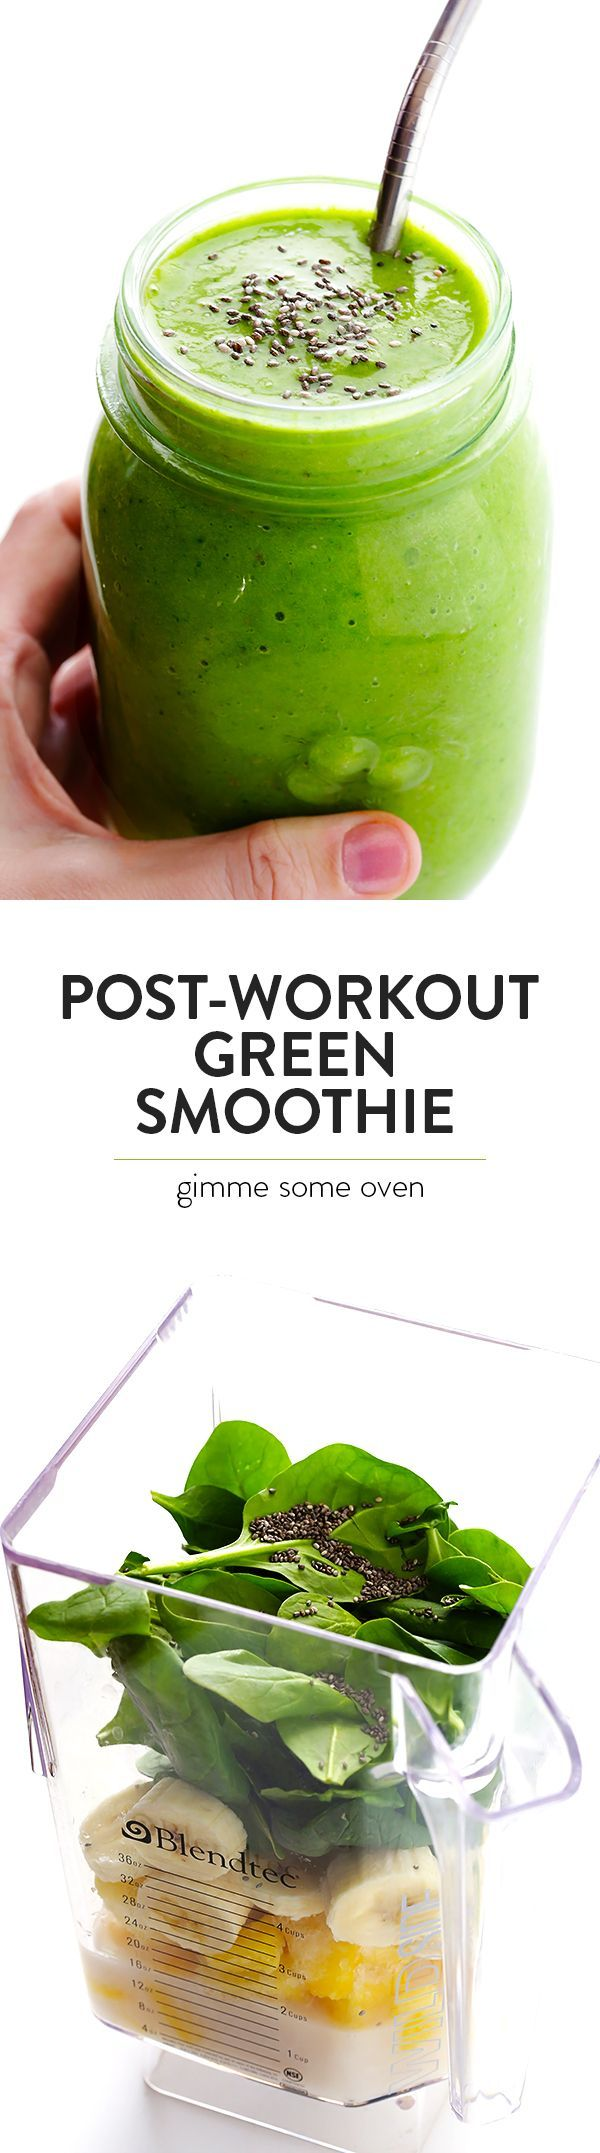 Post-Workout Green Smoothie recipe is chocked full of simple ingredients that will give you a delicious energy boost after a good workout!